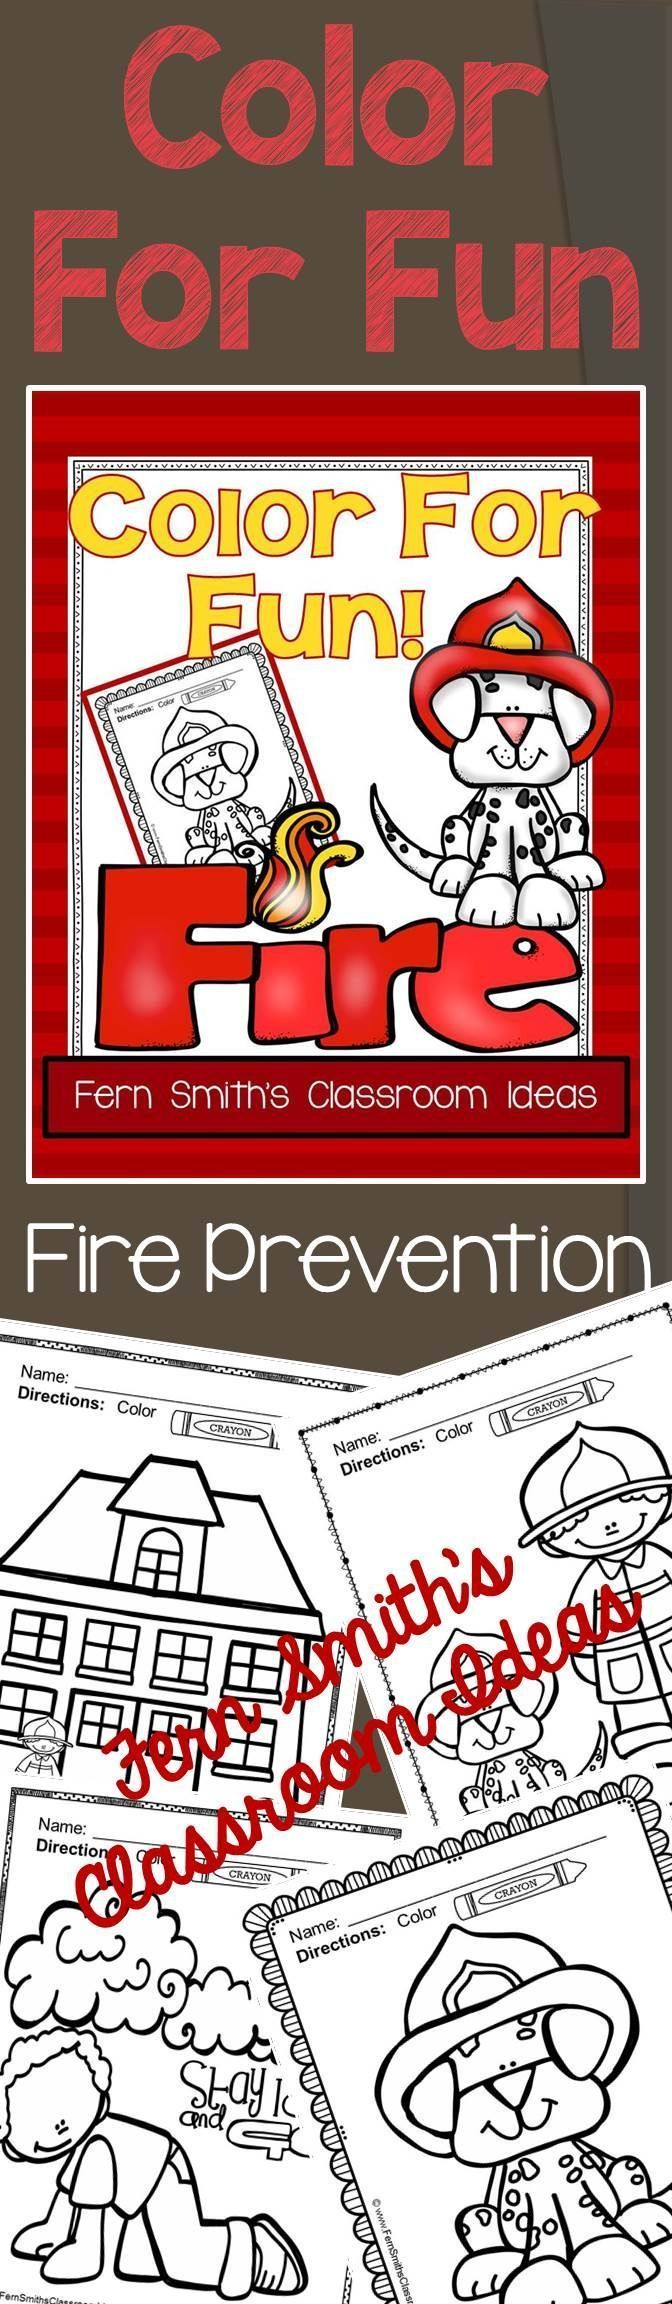 62 best national fire prevention week images on pinterest fire